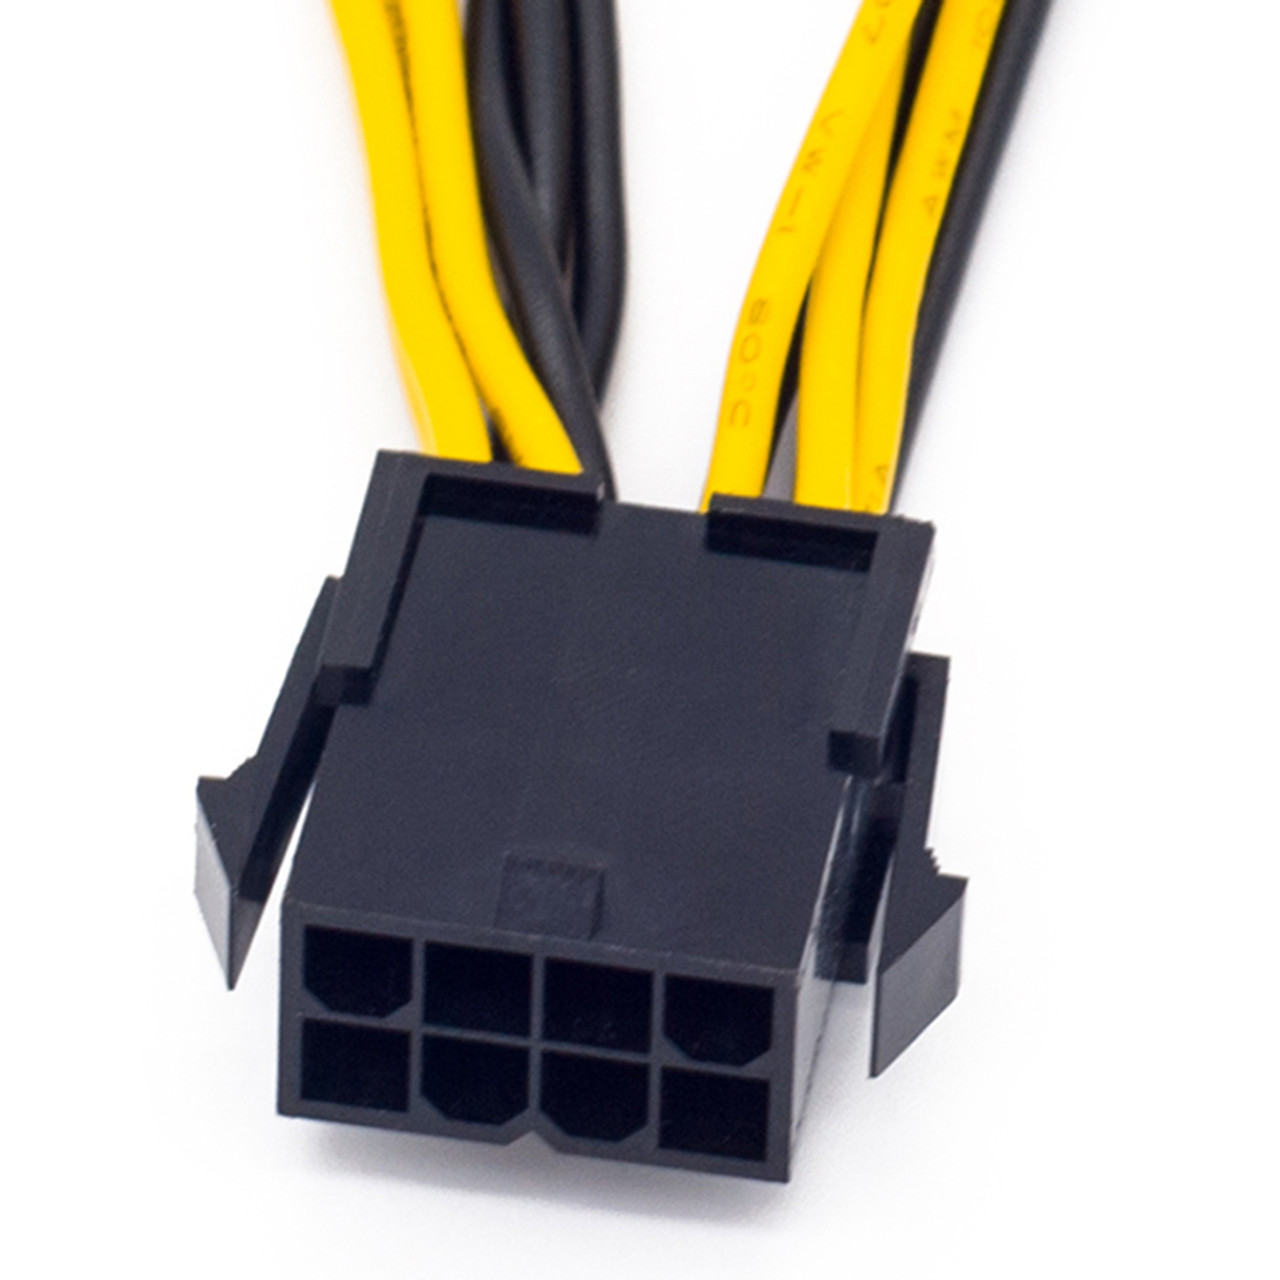 EPS12V / CPU 8pin to dual 6+2pin PCI-E PCI express adapter cable Y splitter